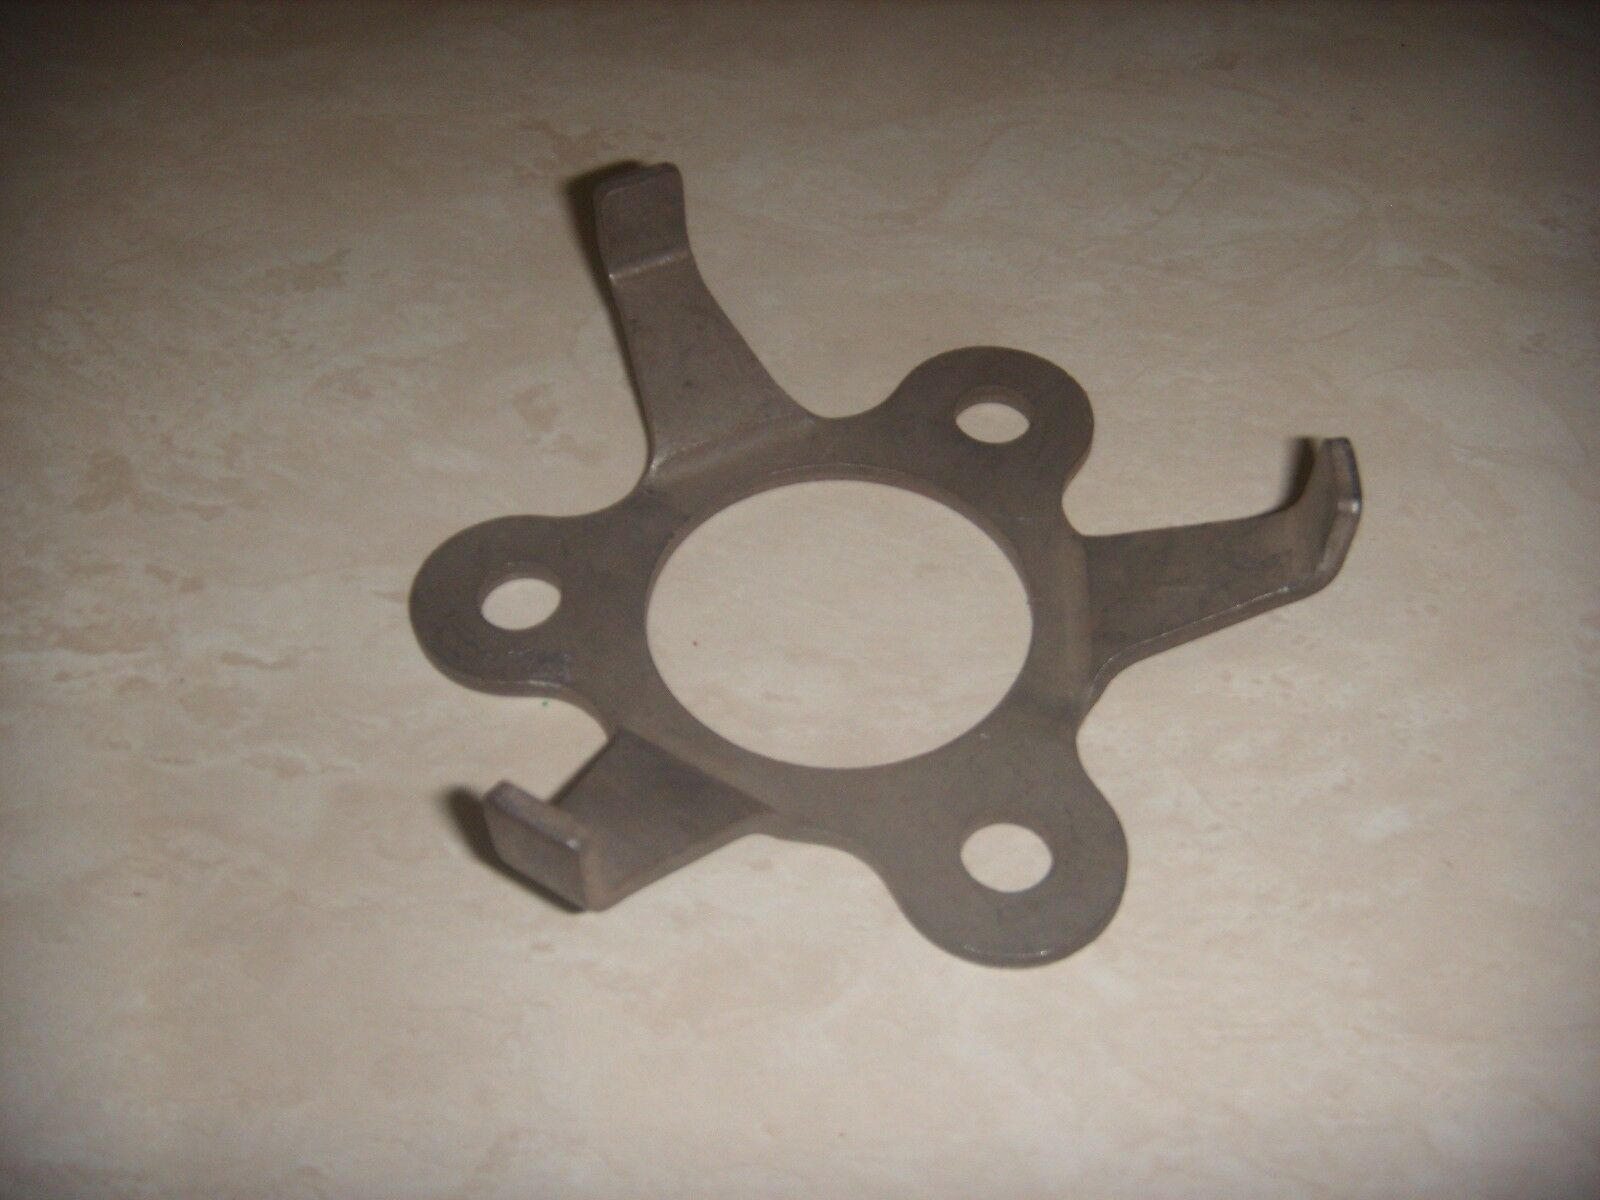 Vintage Arctic Cat NOS Salsbury  Drive Clutch Retractor 0100-062, 702836  quality first consumers first